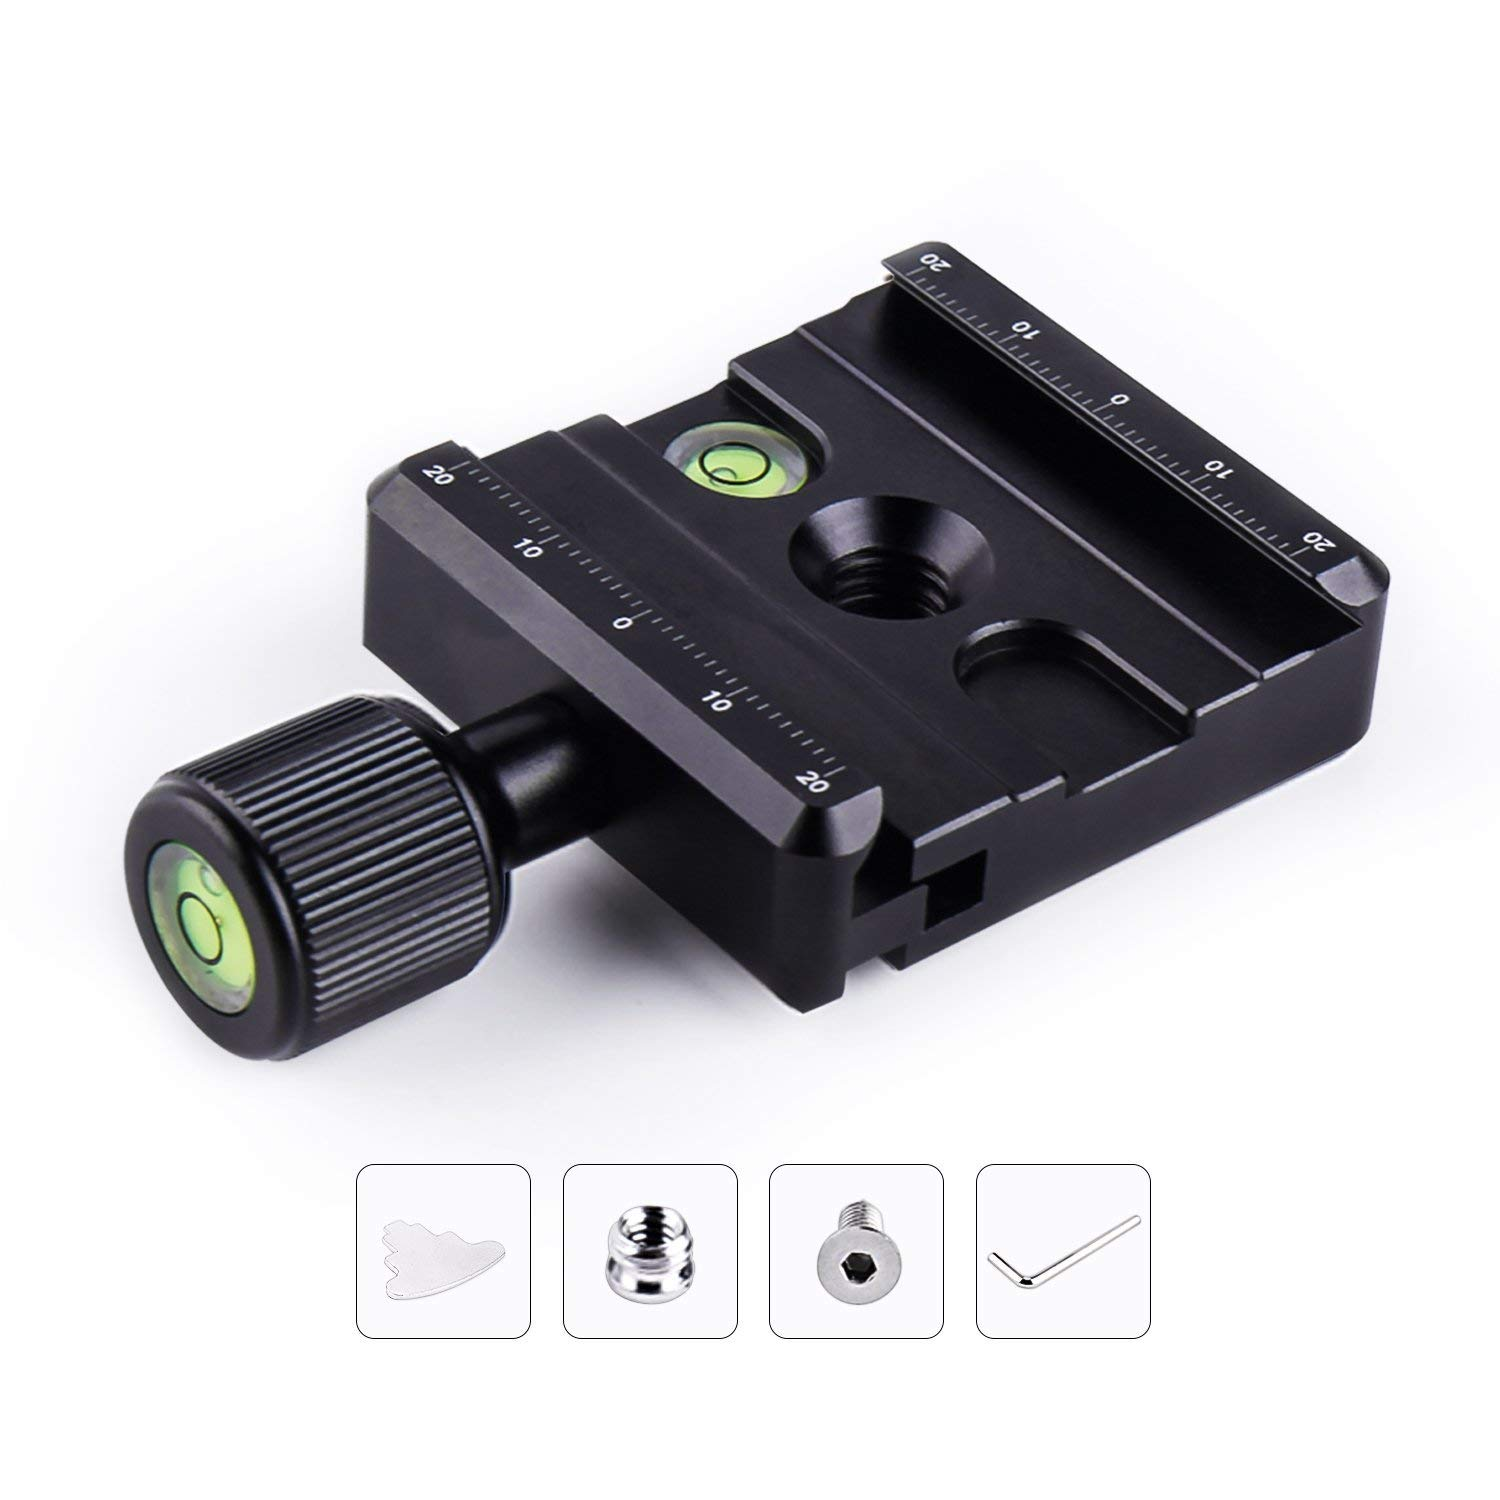 Focpro Aluminium 50mm Universal Quick Release Plate QR Clamp 3/8-inch w 1/4-inch Adapter & Level with Arca-Swiss Compatible Benro RRS Gitzo Wimberley for Tripod Monopod Head